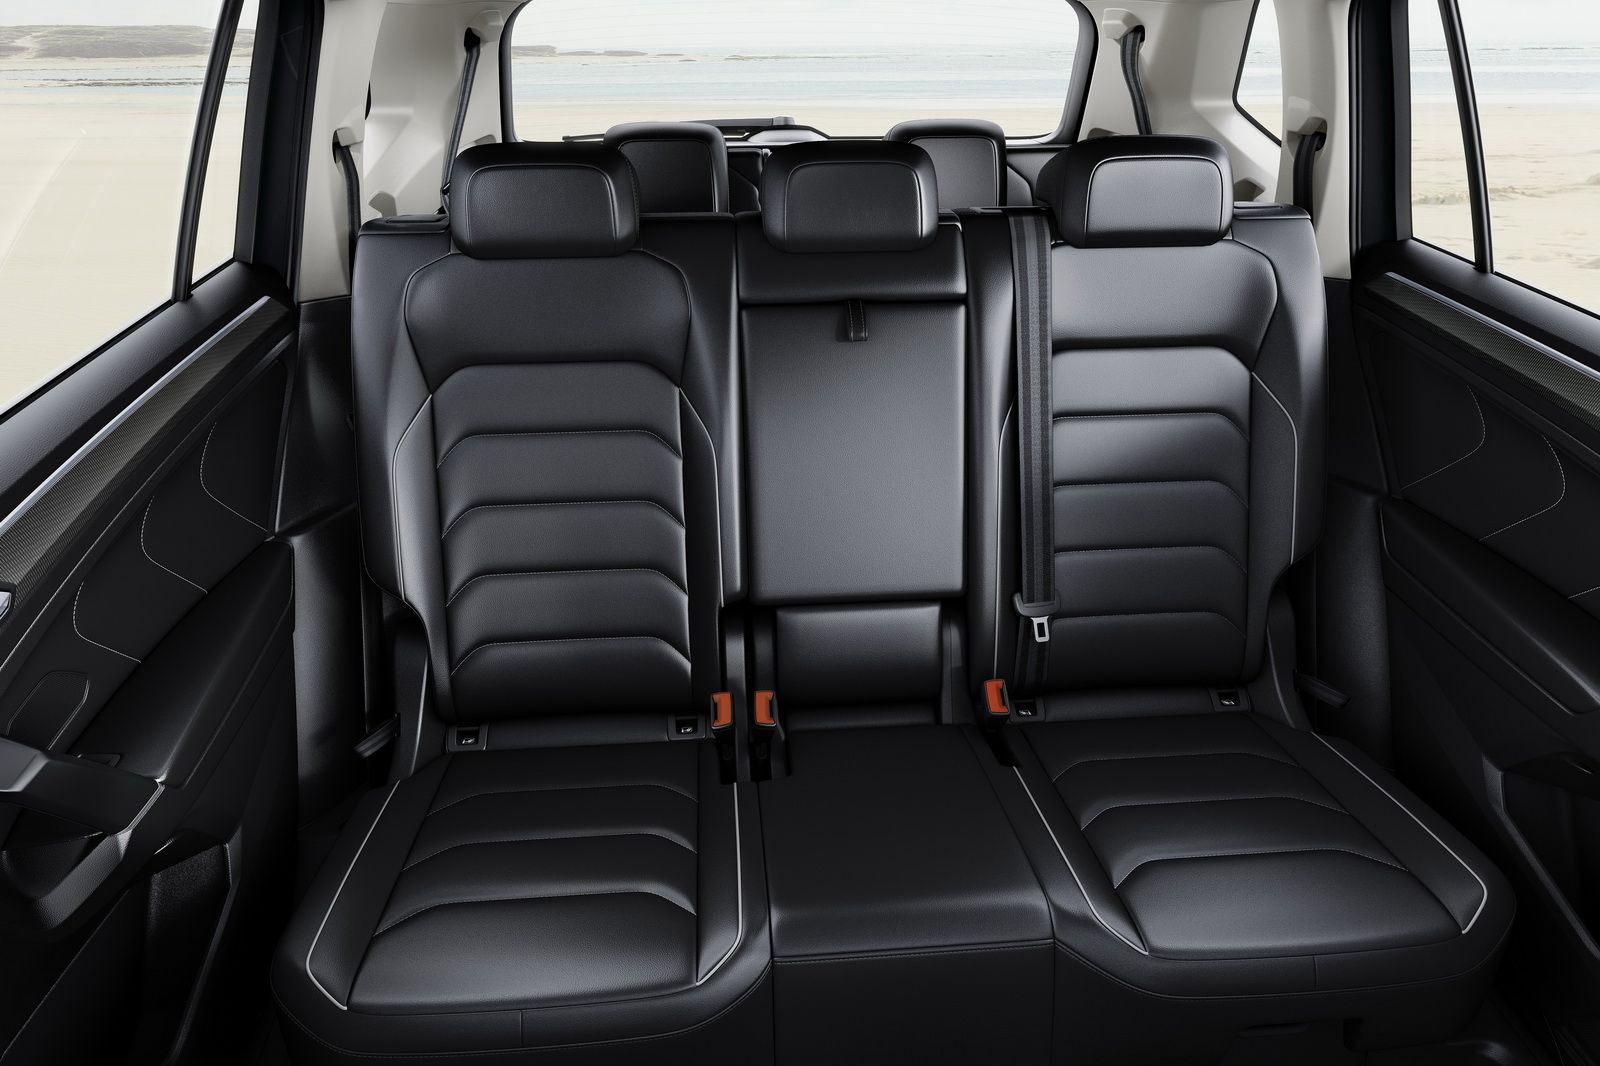 Europe S New Vw Tiguan Allspace With 7 Seats Detailed Ahead Of Geneva Carscoops Volkswagen Geneva Motor Show Seating